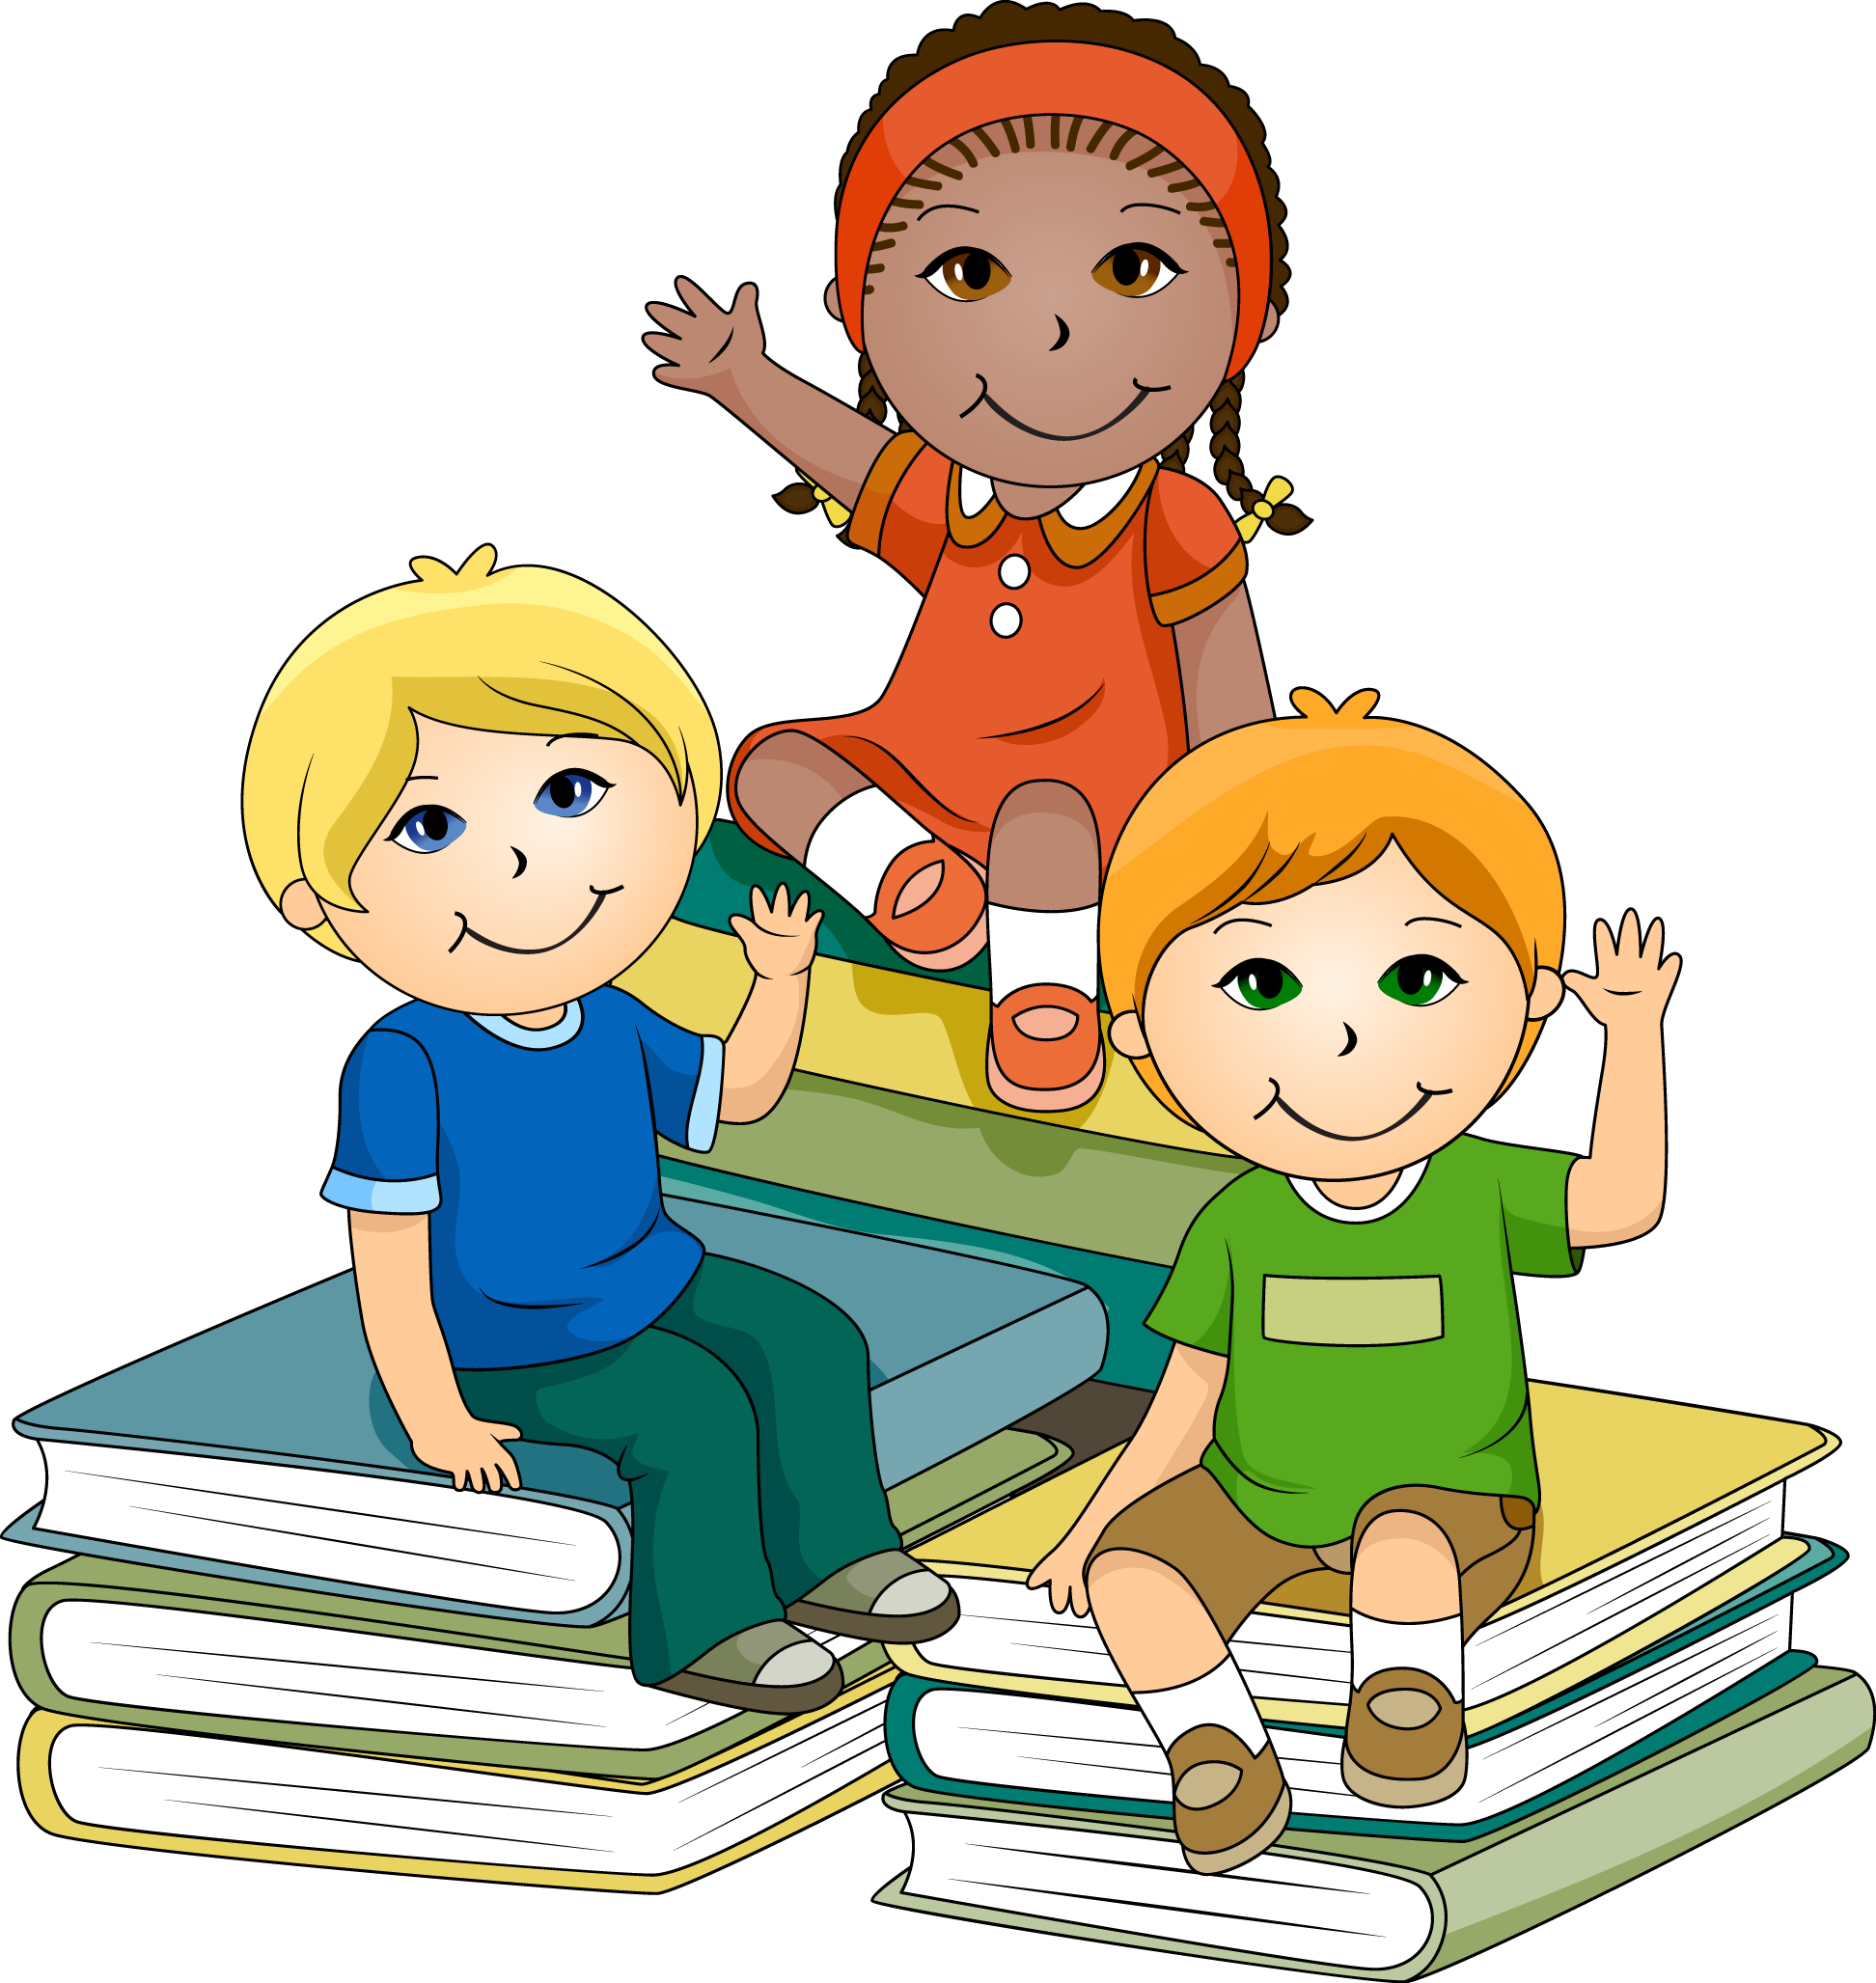 Children with books clipart picture download 17 Best images about Children Books on Pinterest | Books for ... picture download